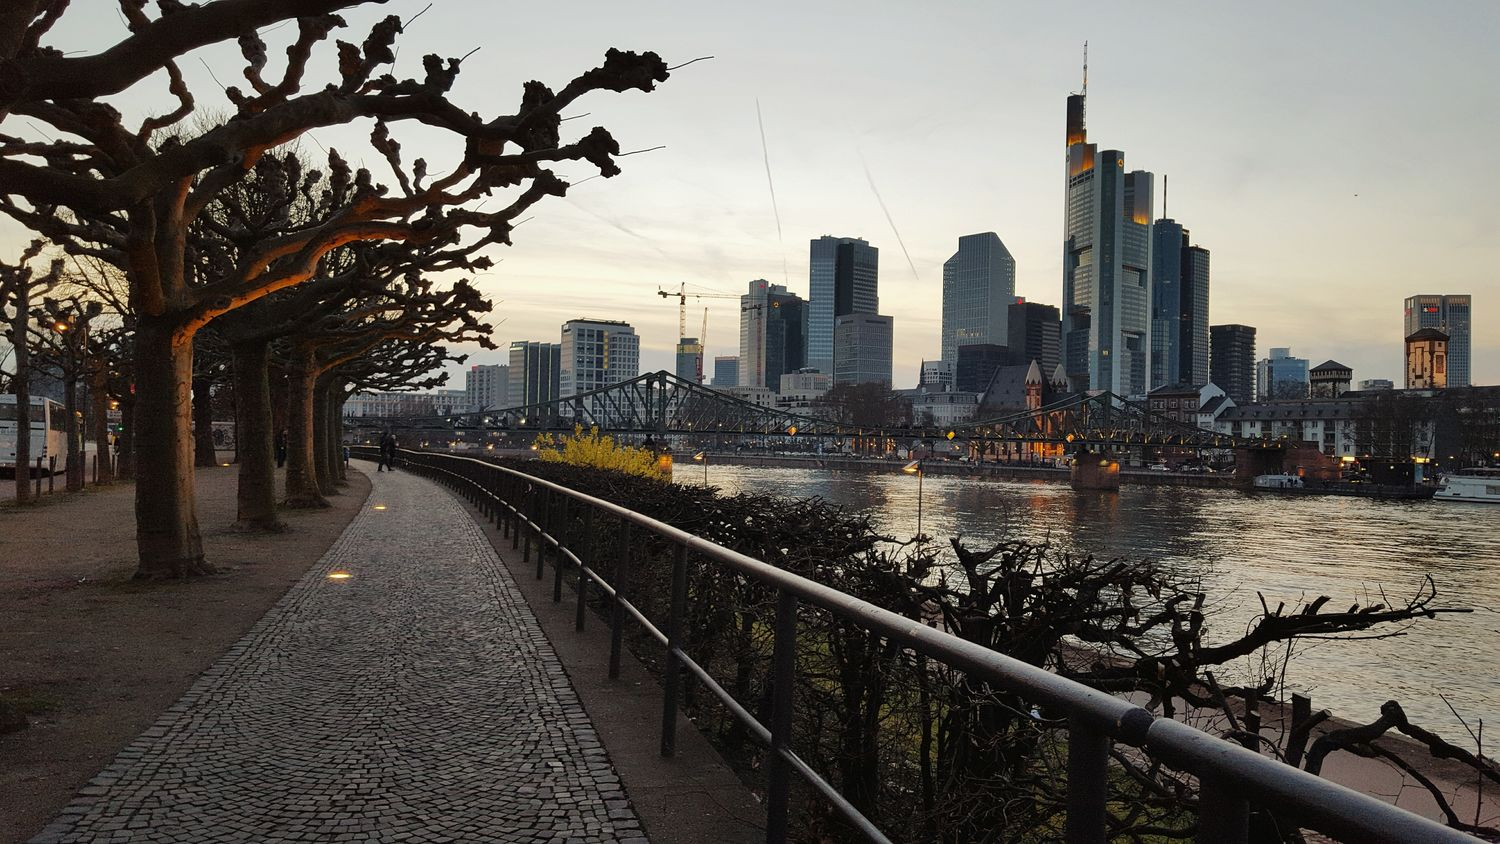 Frankfurt Am Main Sityscapes Sity View Sityscape Evening Time Evening Light